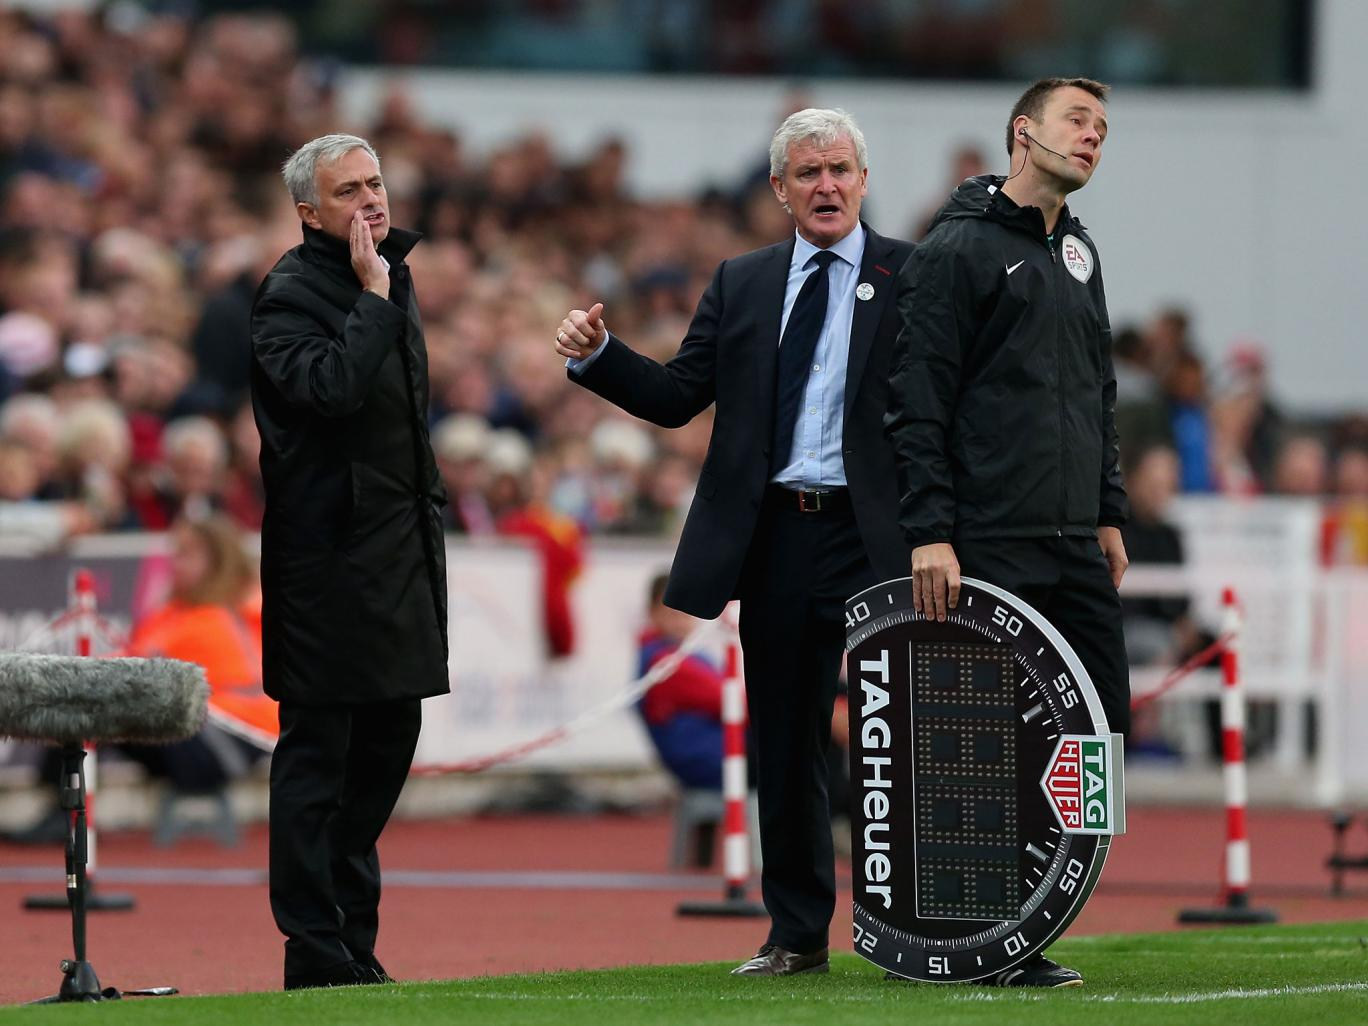 Mark Hughes says he pushed Jose Mourinho after Manchester United manager encroached in technical area